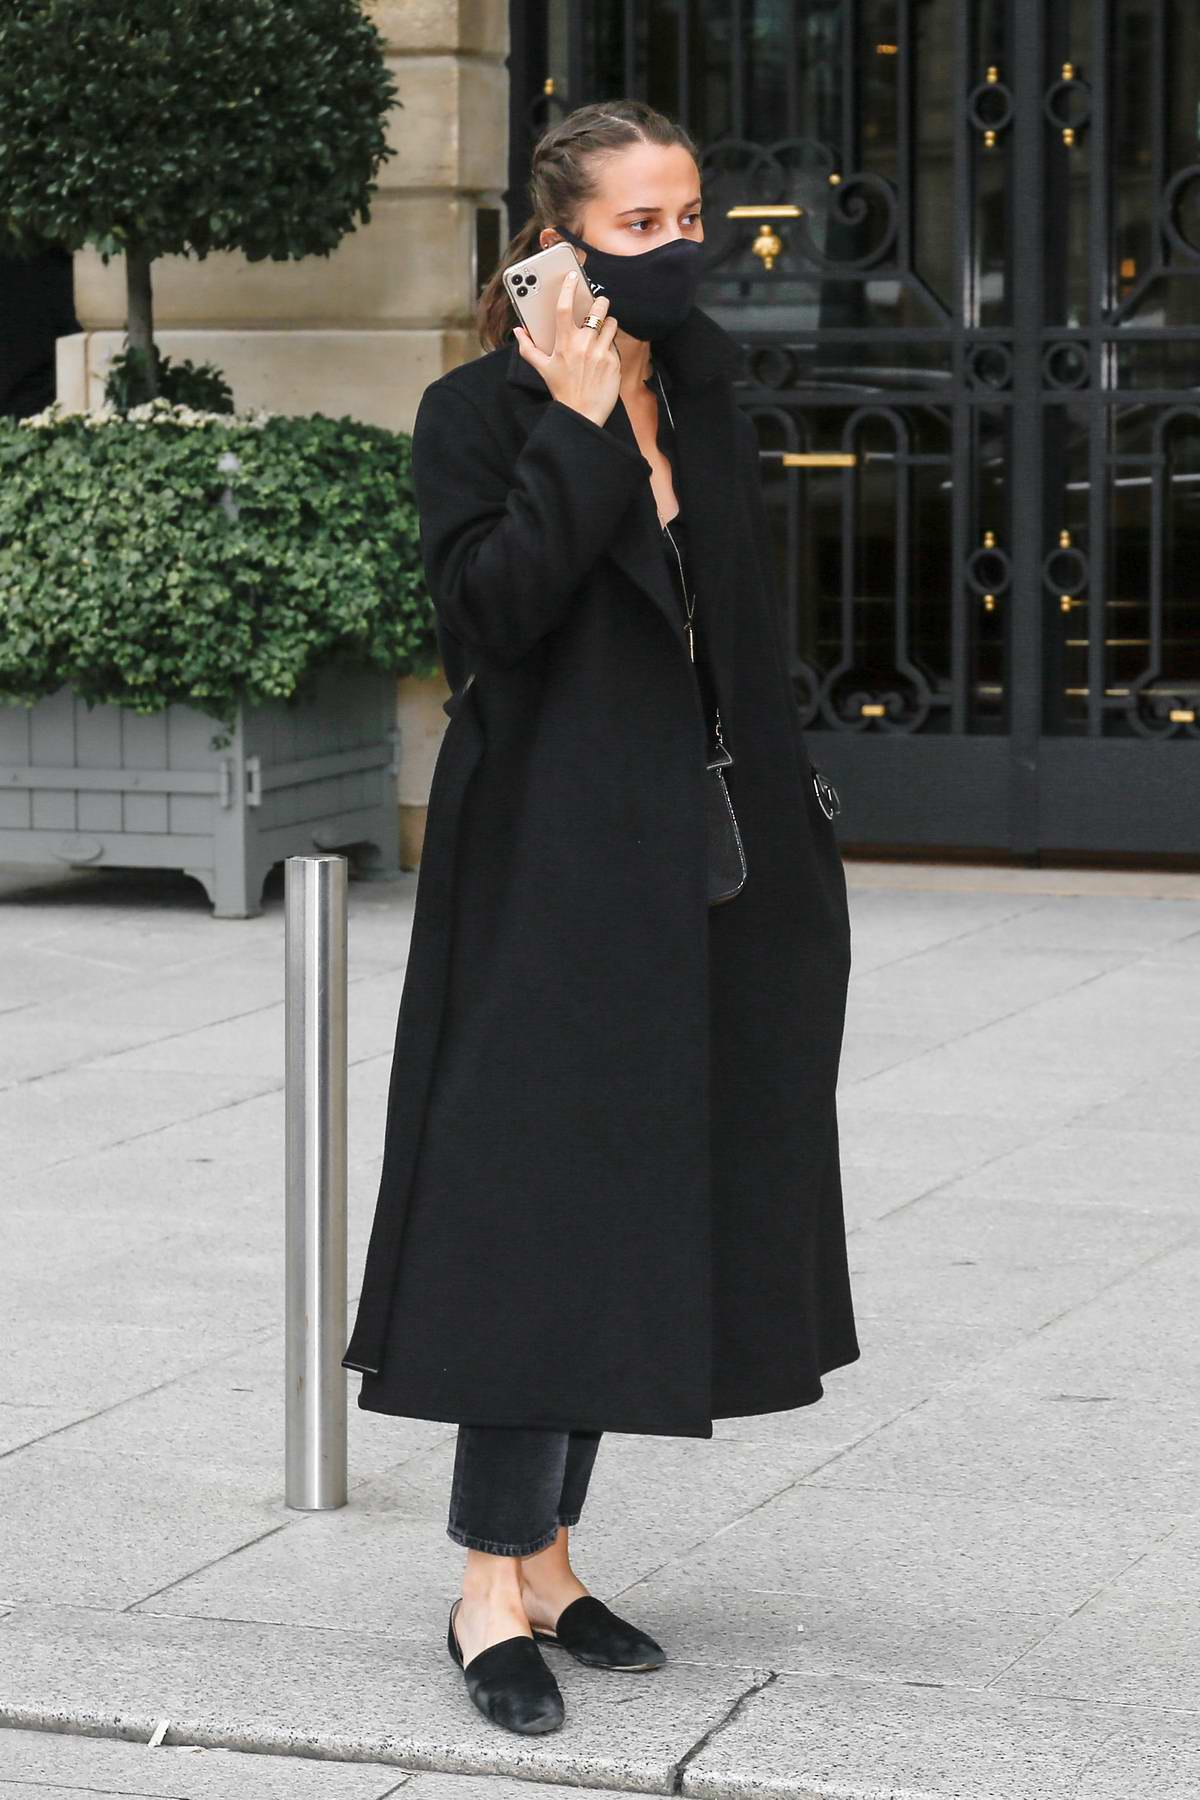 Alicia Vikander looks chic in all-black as she leaves her hotel in Paris, France